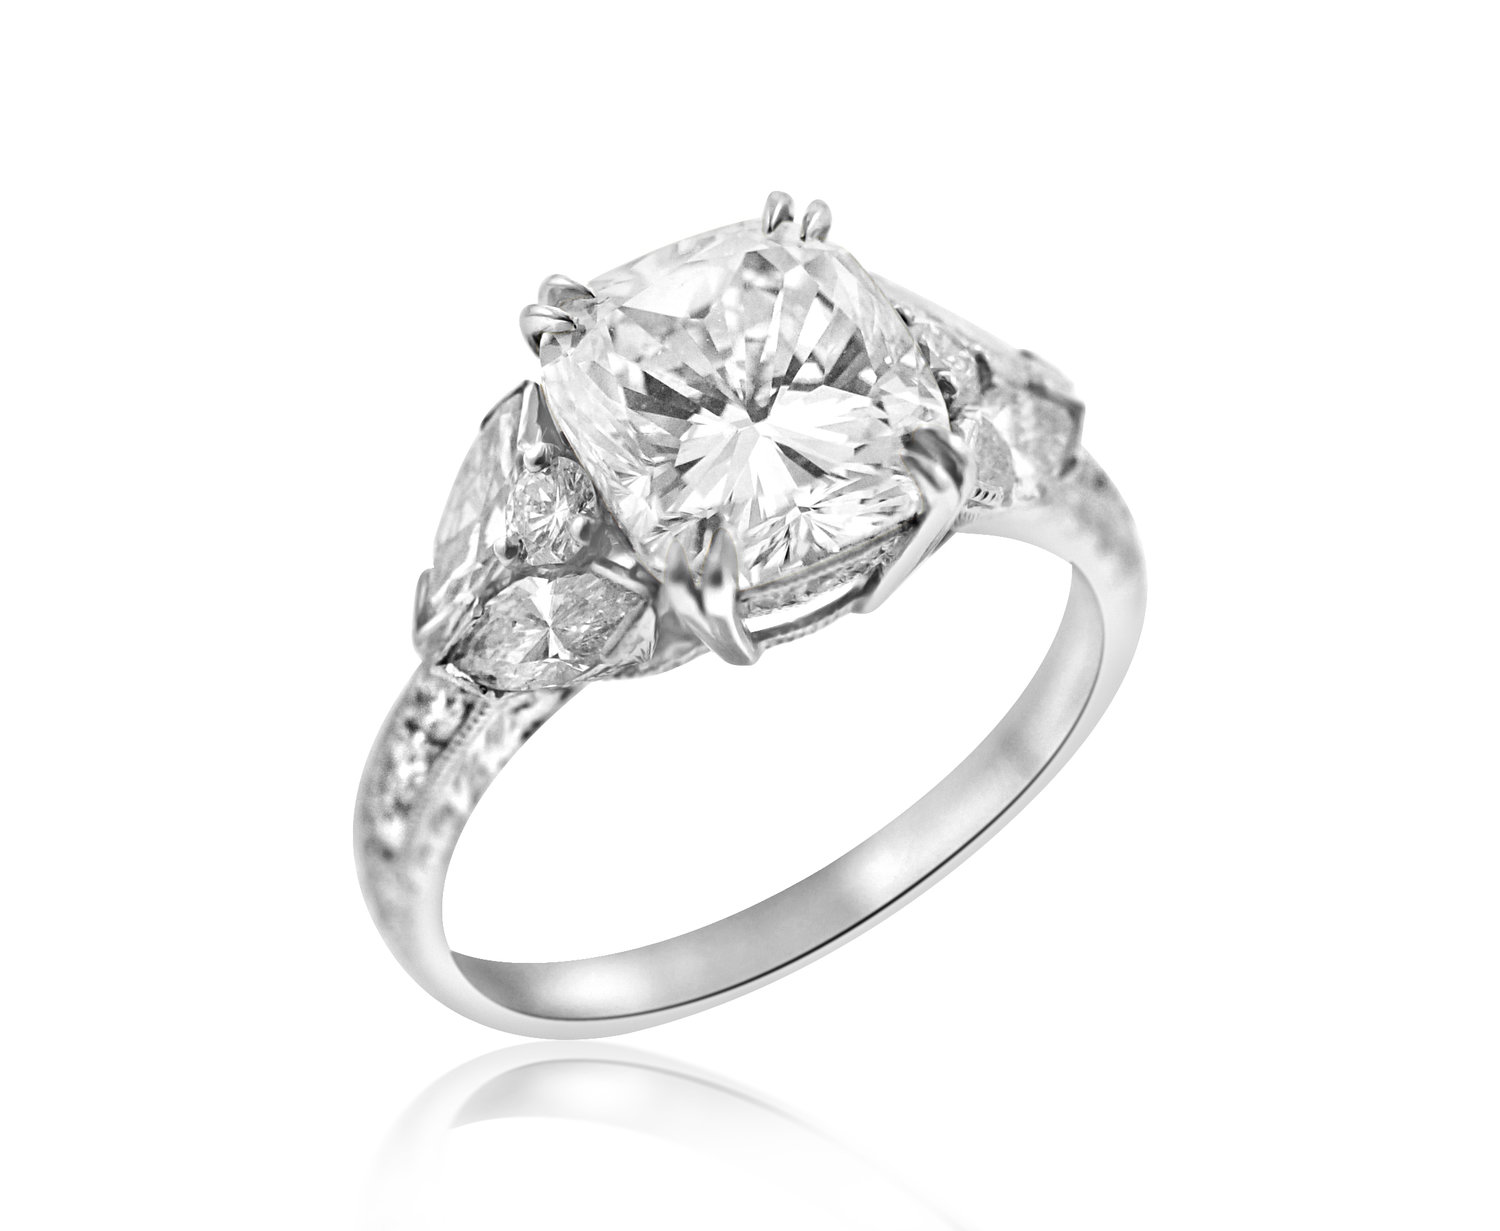 Cushion Cut And Marquise Diamond Engagement Ring